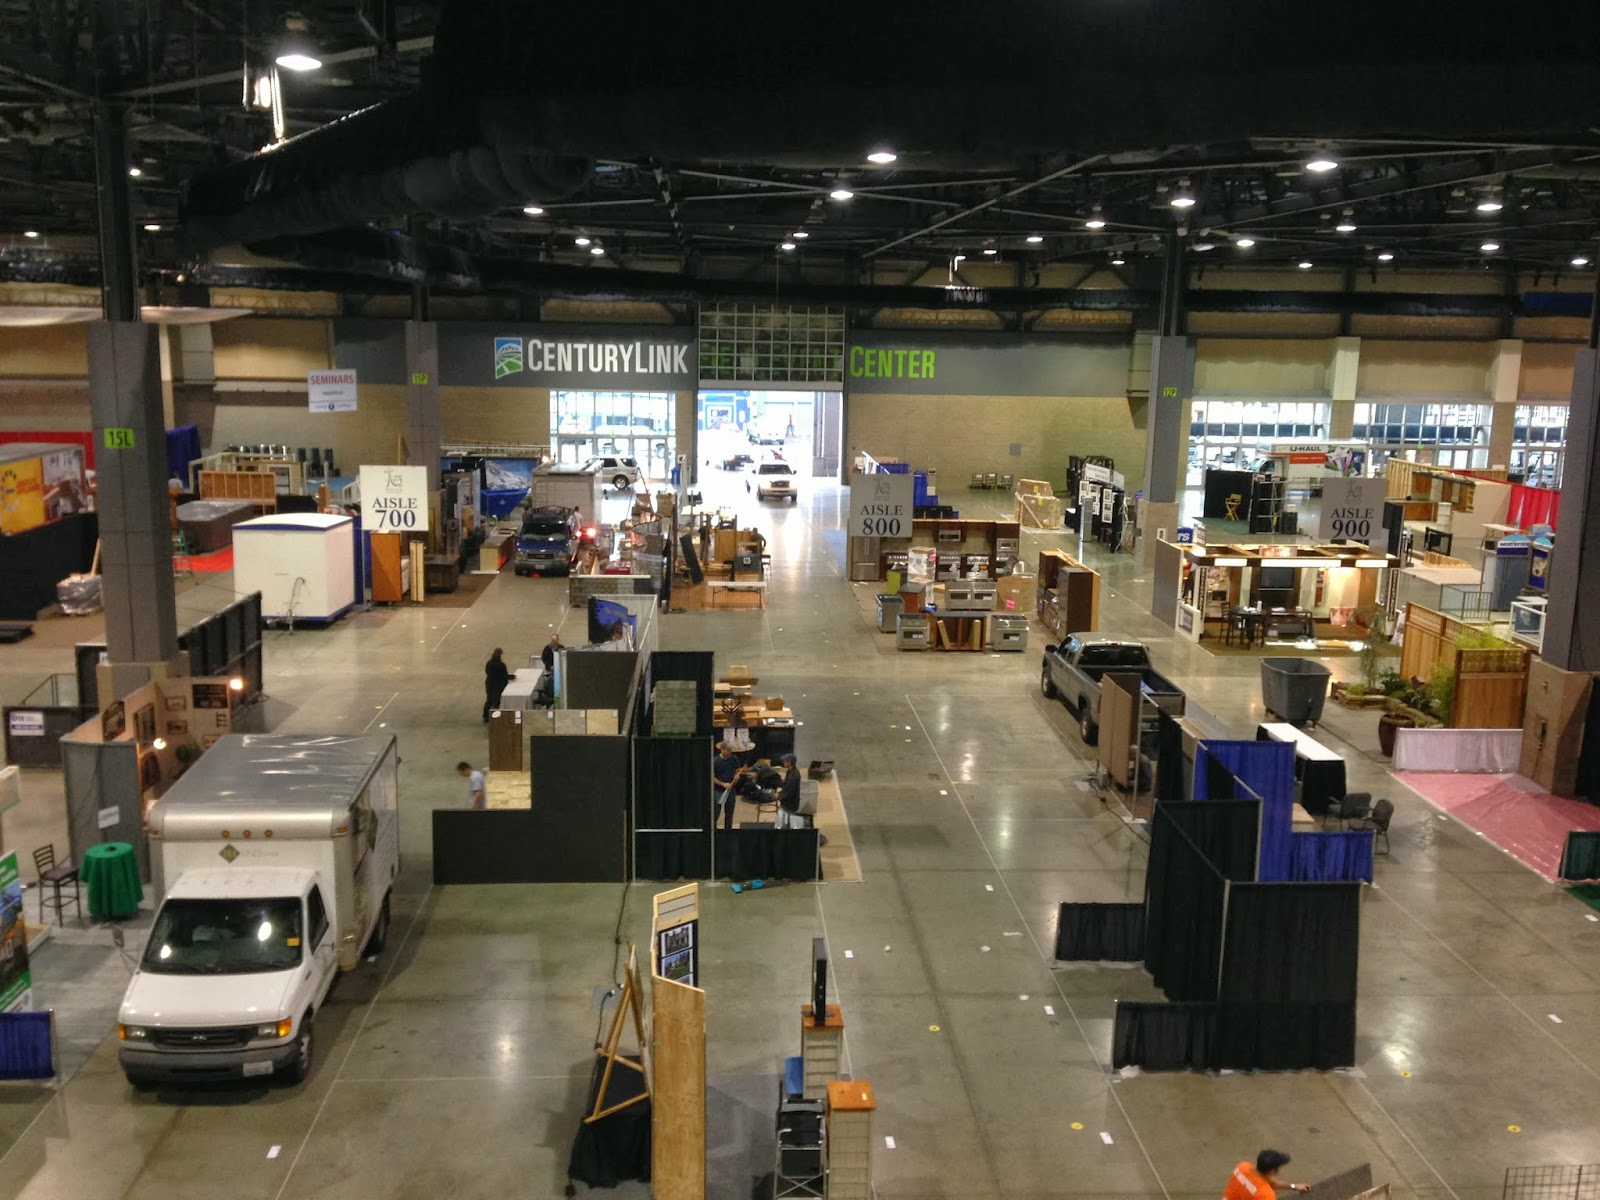 It Is The Sound And Sight Of Cranes Bringing In Garden Compost, Hammers  Swinging And Saws In Action As Seattle Home Show 2 Exhibitors Prepare For  Opening ...